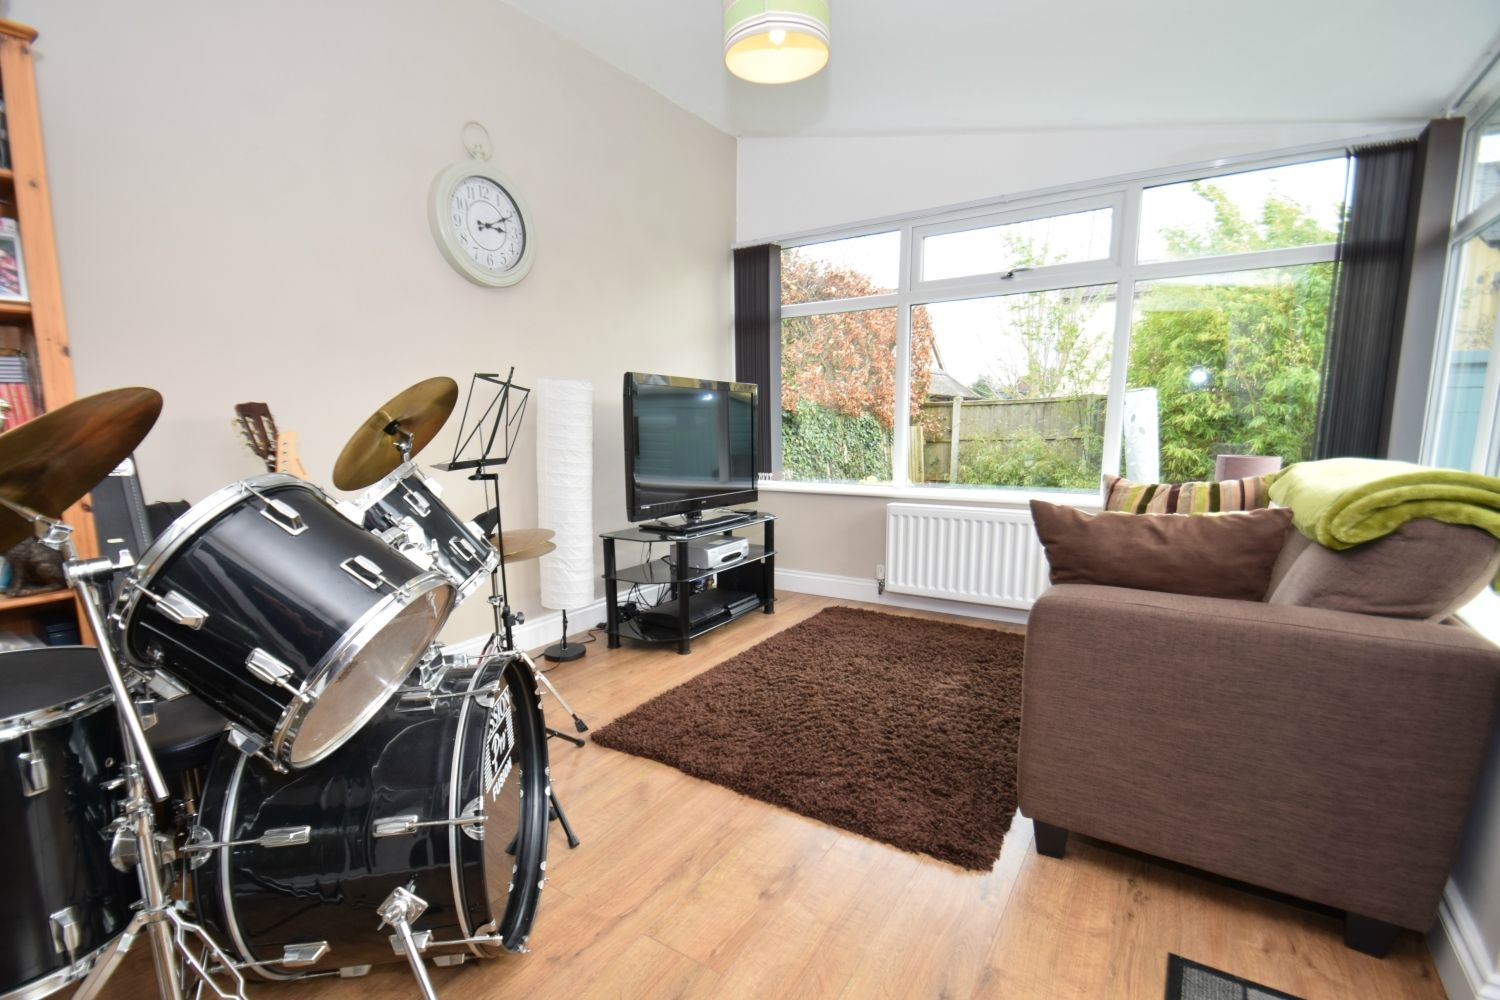 3 bed detached for sale in Foxes Close, Blackwell, B60  - Property Image 8